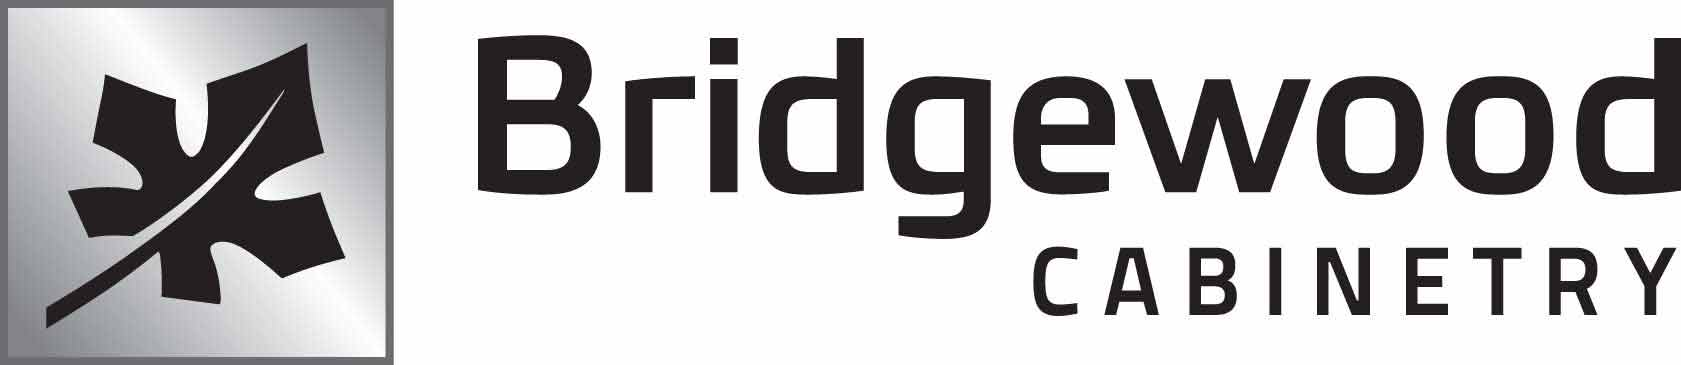 Bridgewood Cabinetry